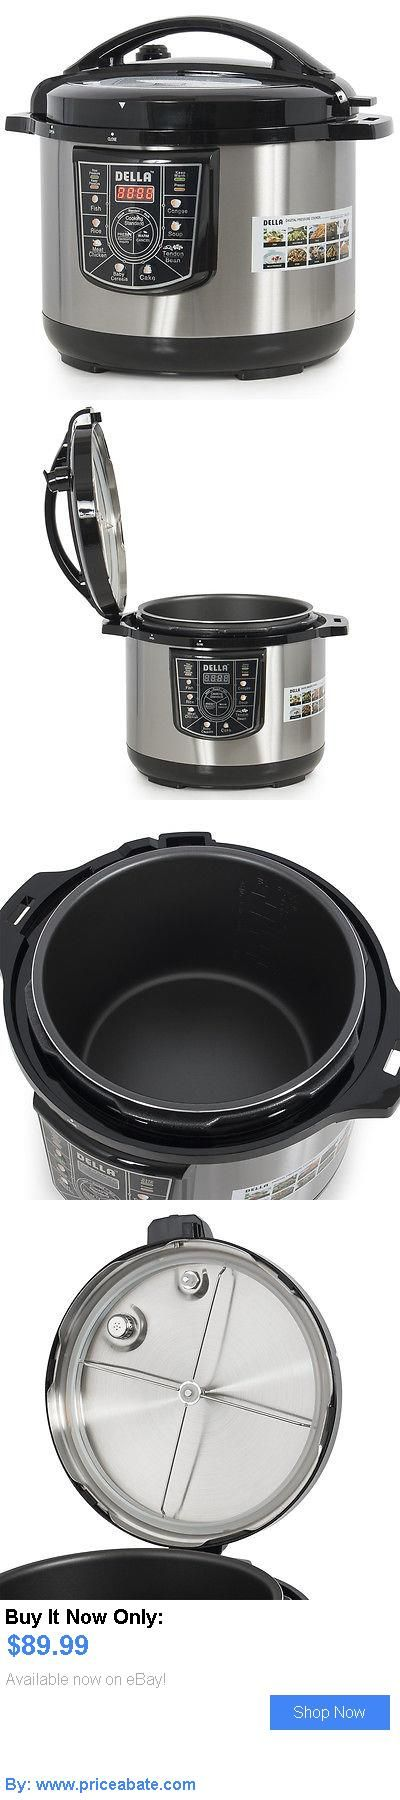 Small Kitchen Appliances: 10-Quart 1400-Watt Electric Pressure Cooker 8-In-1 Programmable Stainless Steel BUY IT NOW ONLY: $89.99 #priceabateSmallKitchenAppliances OR #priceabate